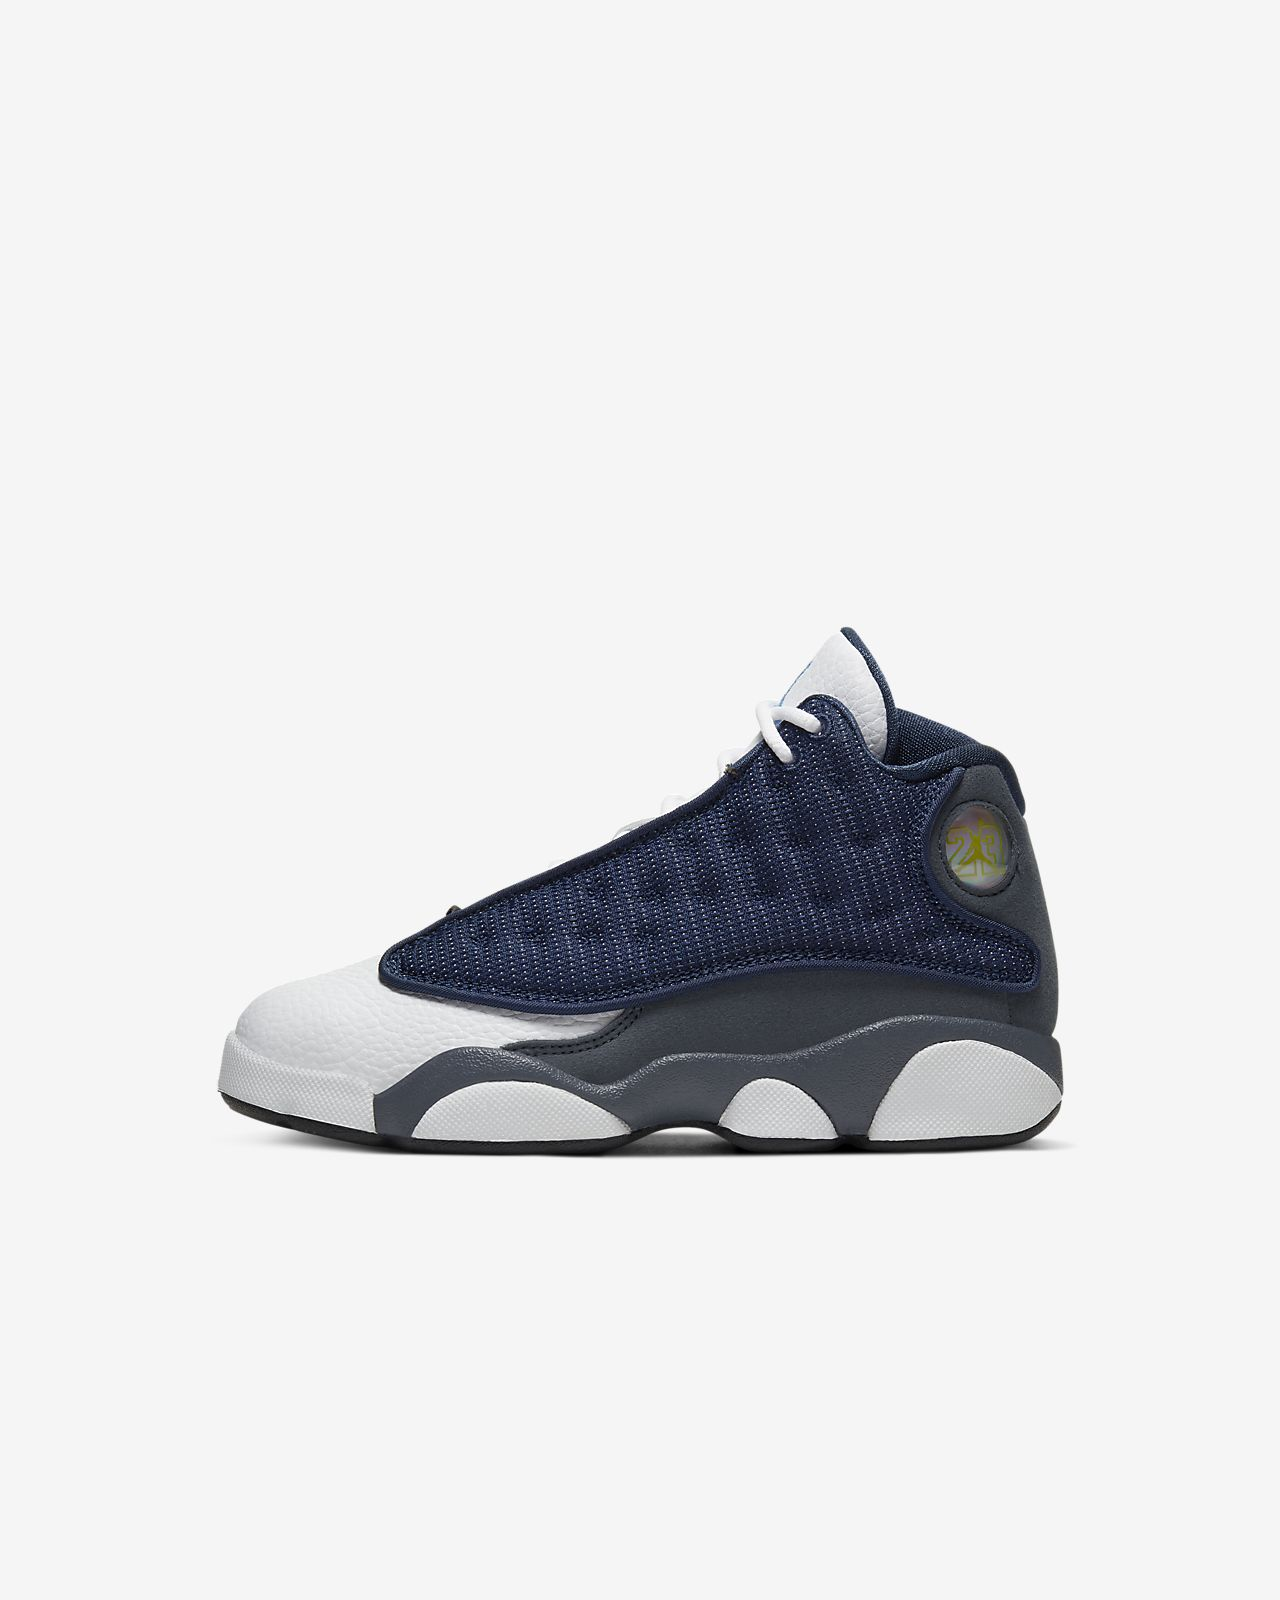 Jordan 13 Retro Little Kids' Shoe